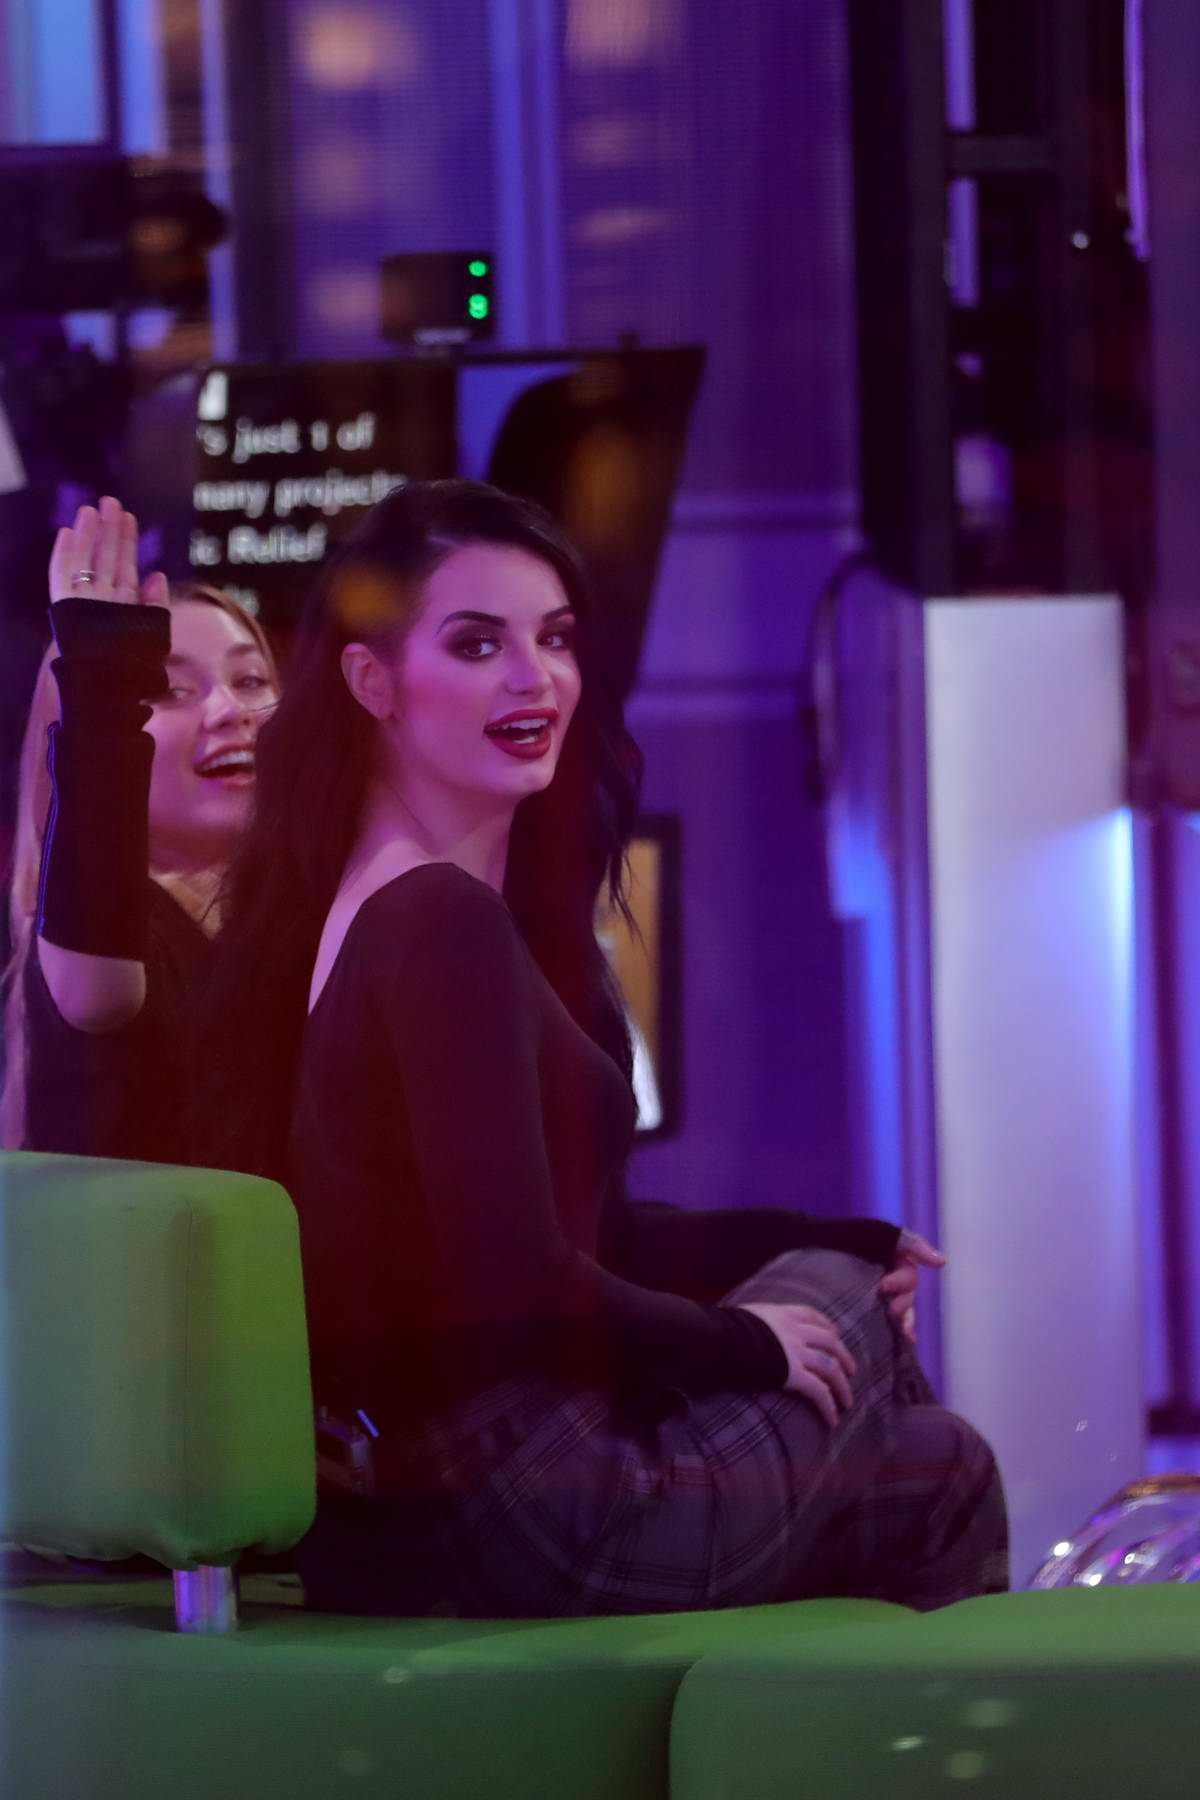 Saraya-jade 'Paige' Bevis and Florence Pugh makes an appearance on 'The One Show' at the BBC Studios in London, UK